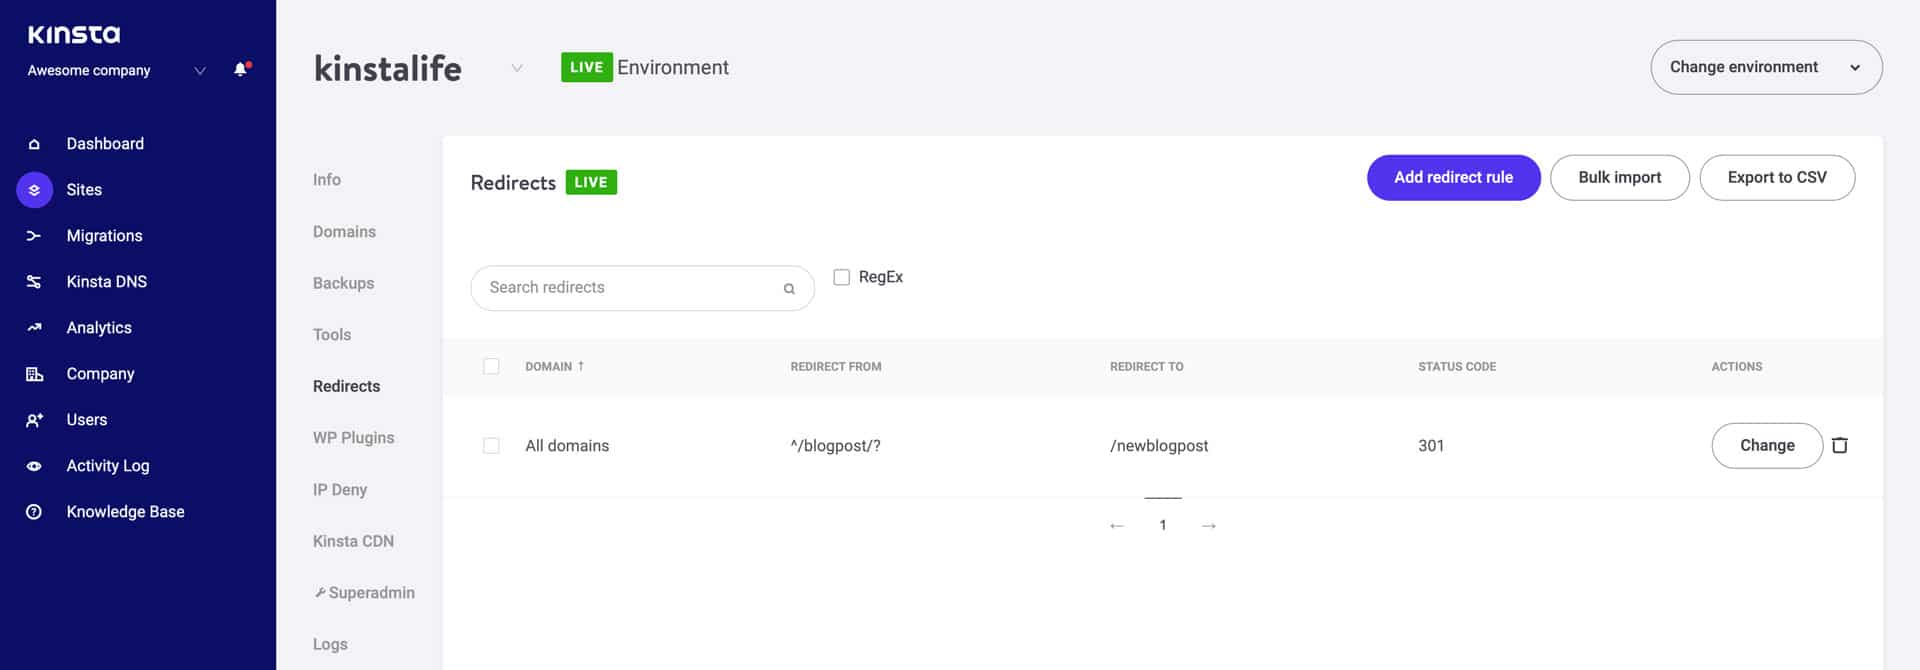 Manage redirect rules in the MyKinsta dashboard.